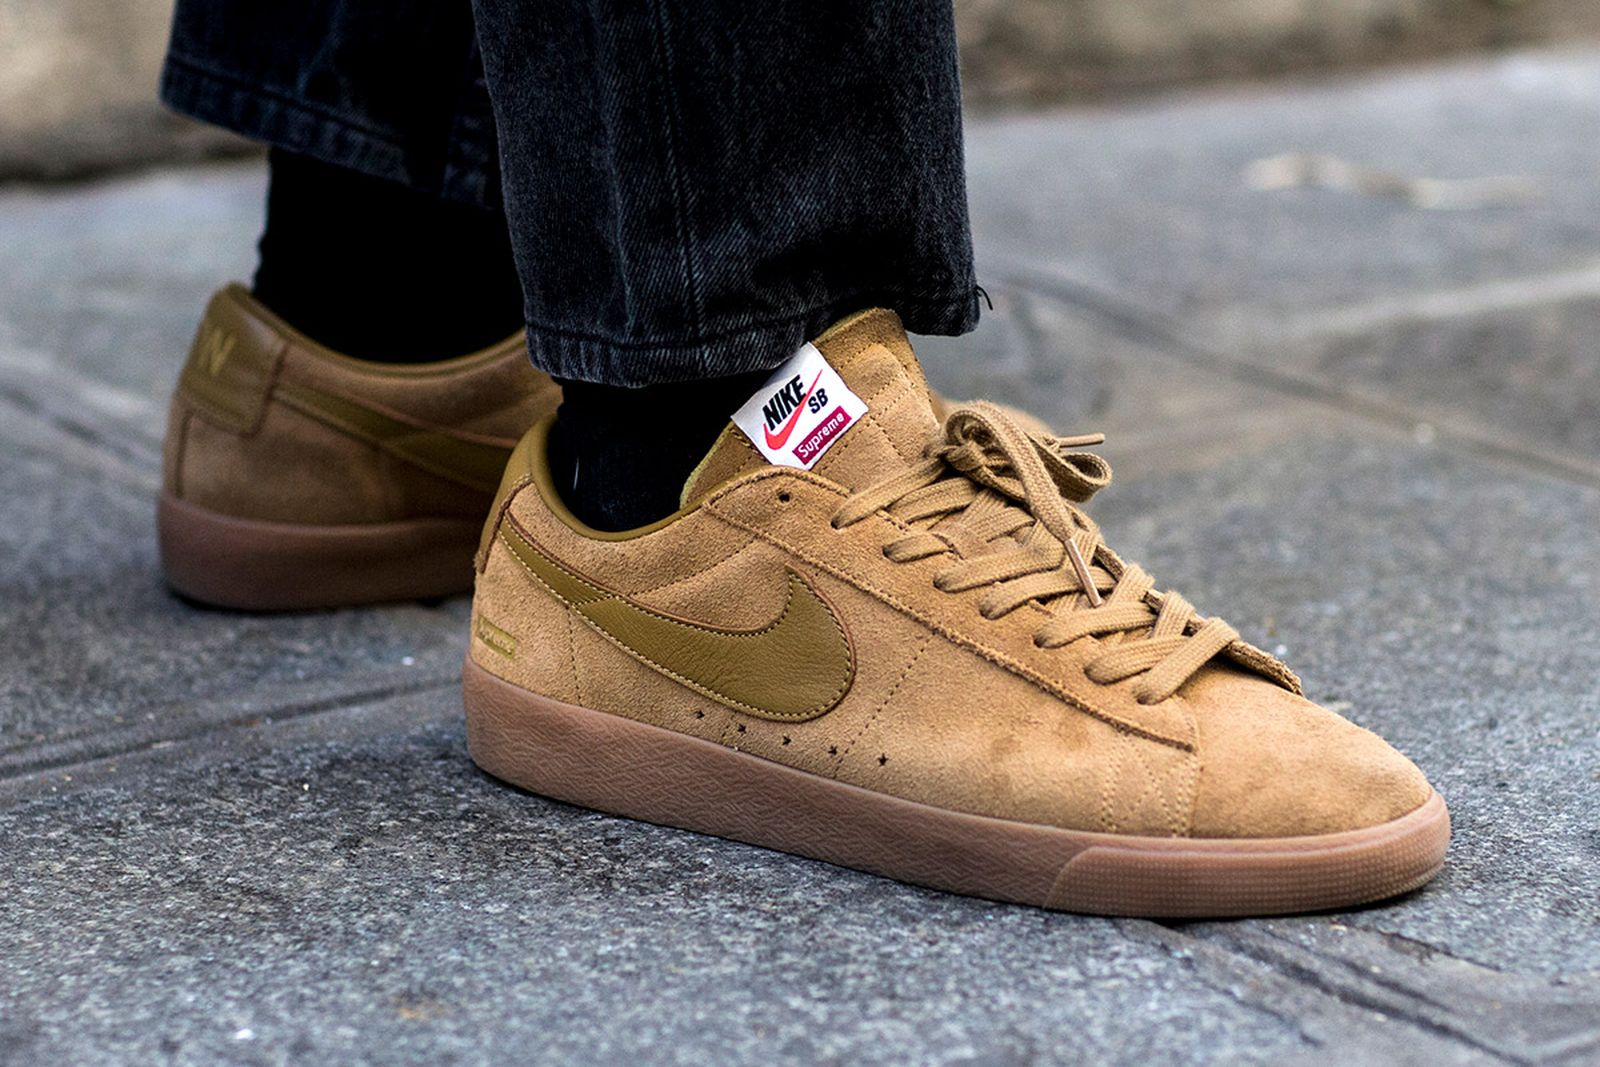 8 of the Best Skate Shoes On the Market Right Now